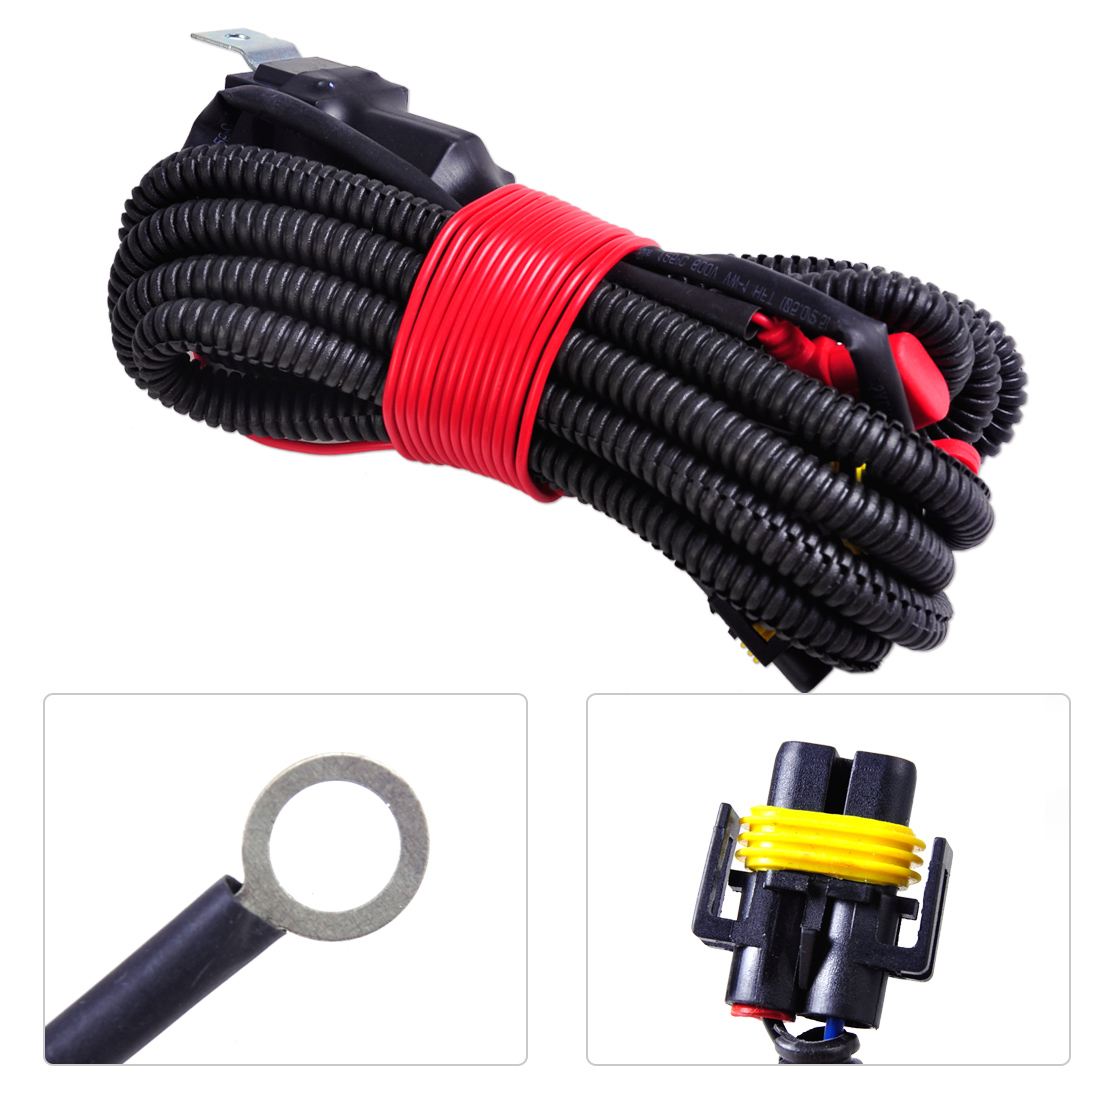 beler New Arrival H11 Female Adapter Wiring Harness Sockets Wire Connector  for Fog Light Lamp For Ford Focus Acura Nissan Honda-in Wire from  Automobiles ...